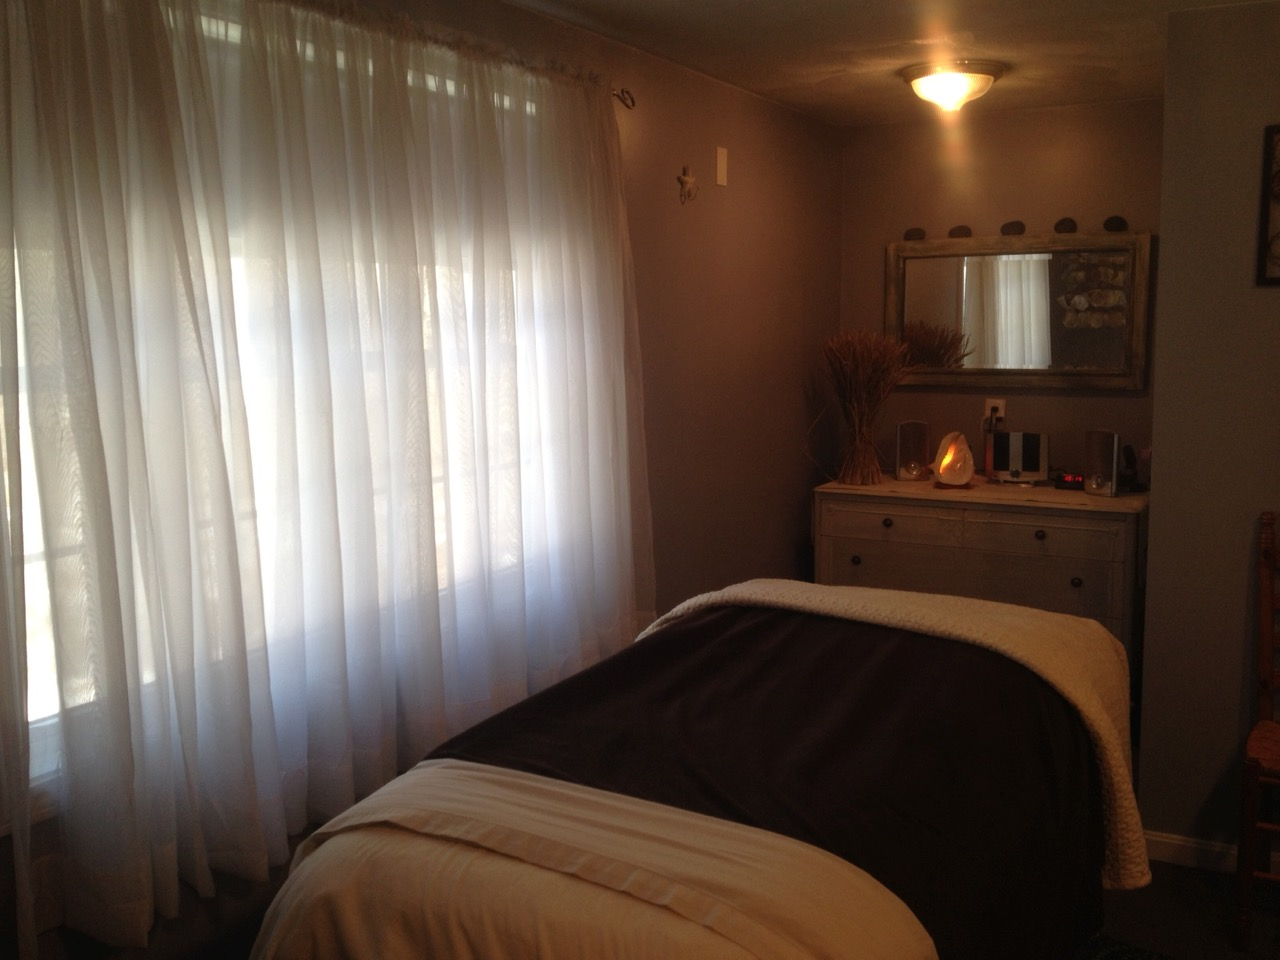 Oasis Day Spa Room